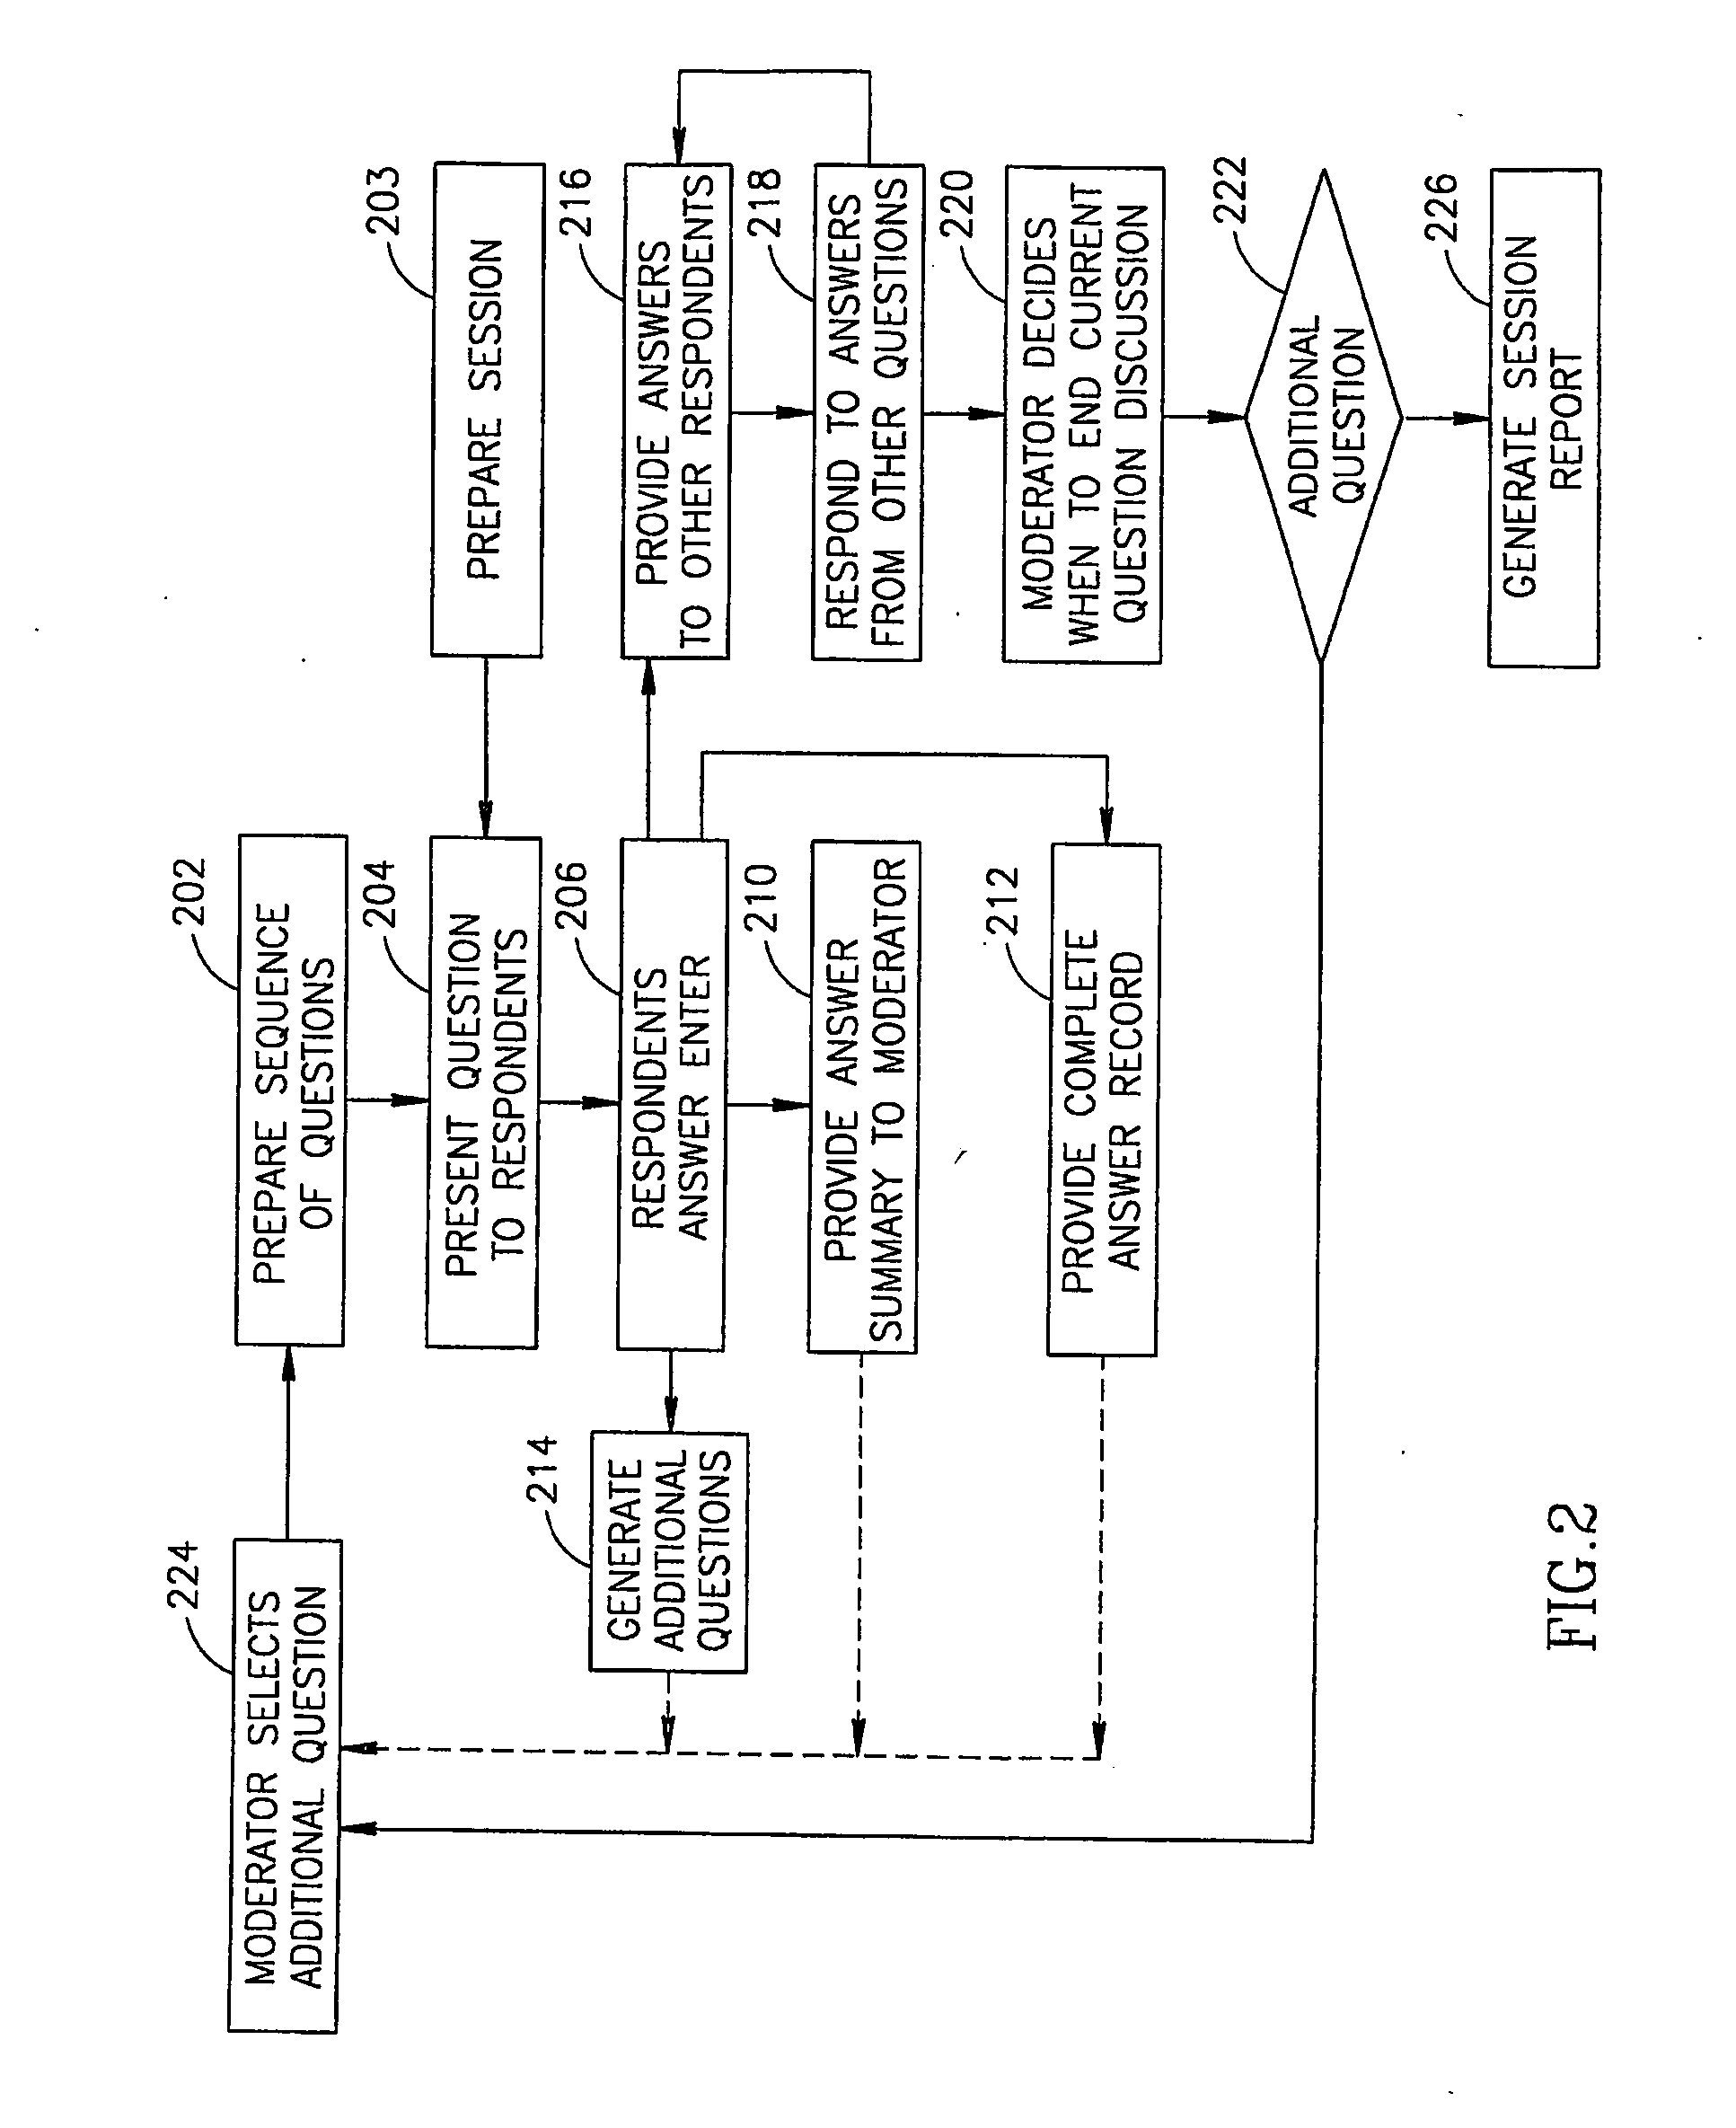 surveys system patent us20060155513 survey system google patenten 2413